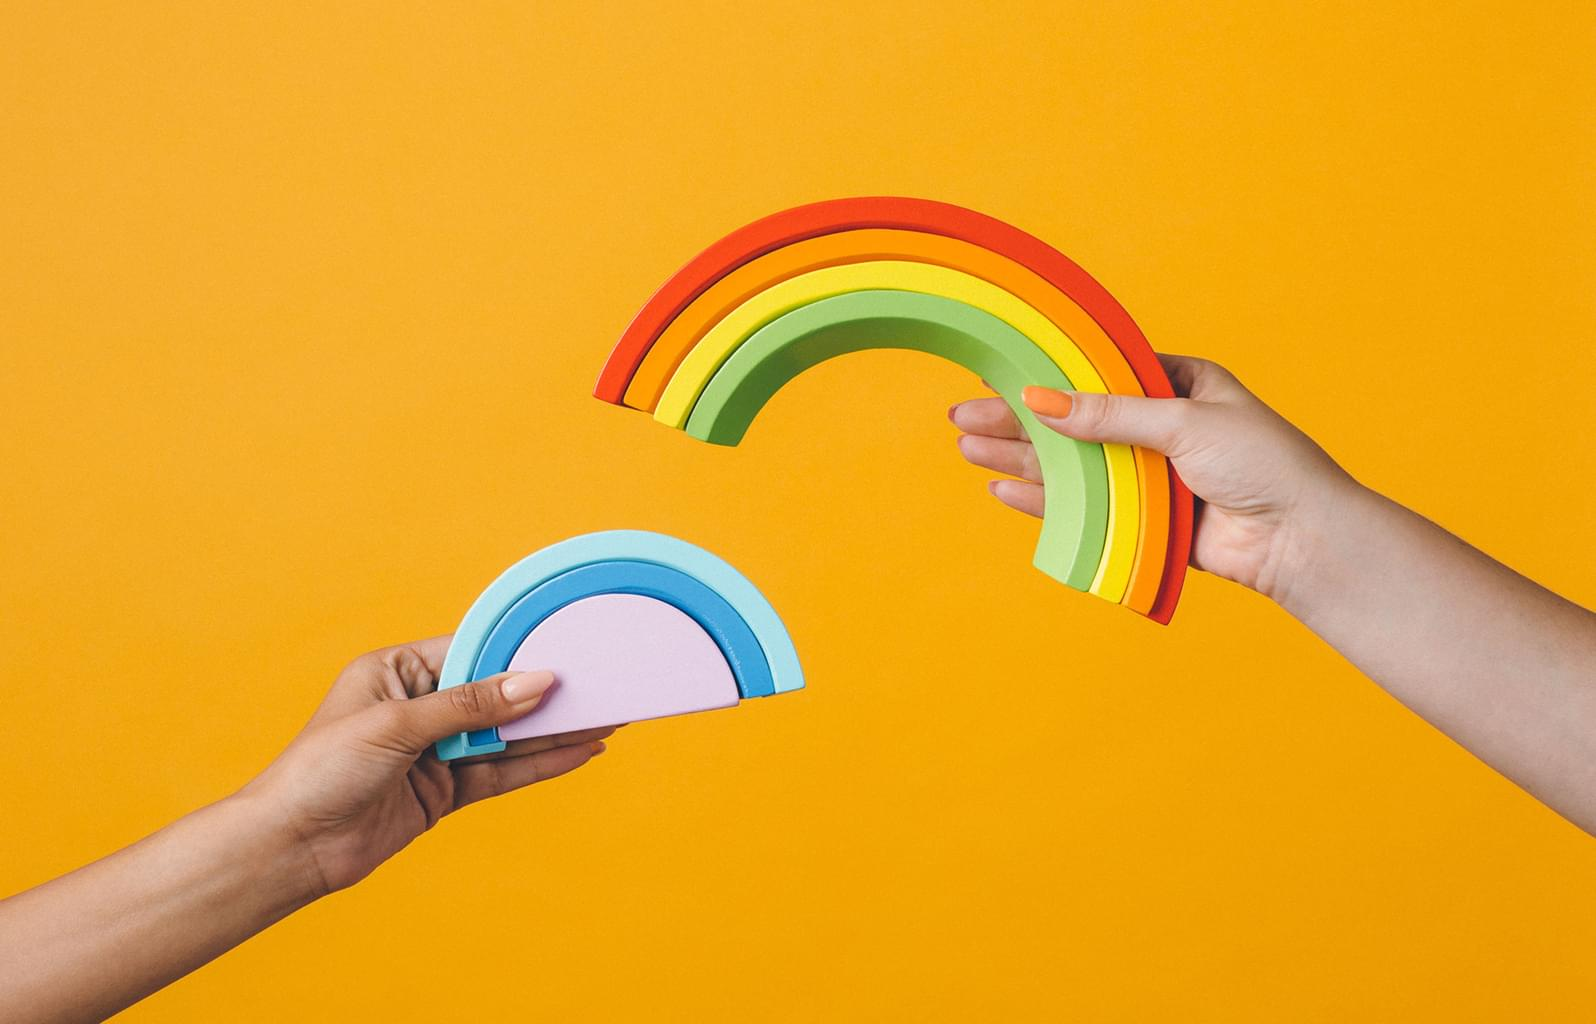 image of hands and rainbows on bright background